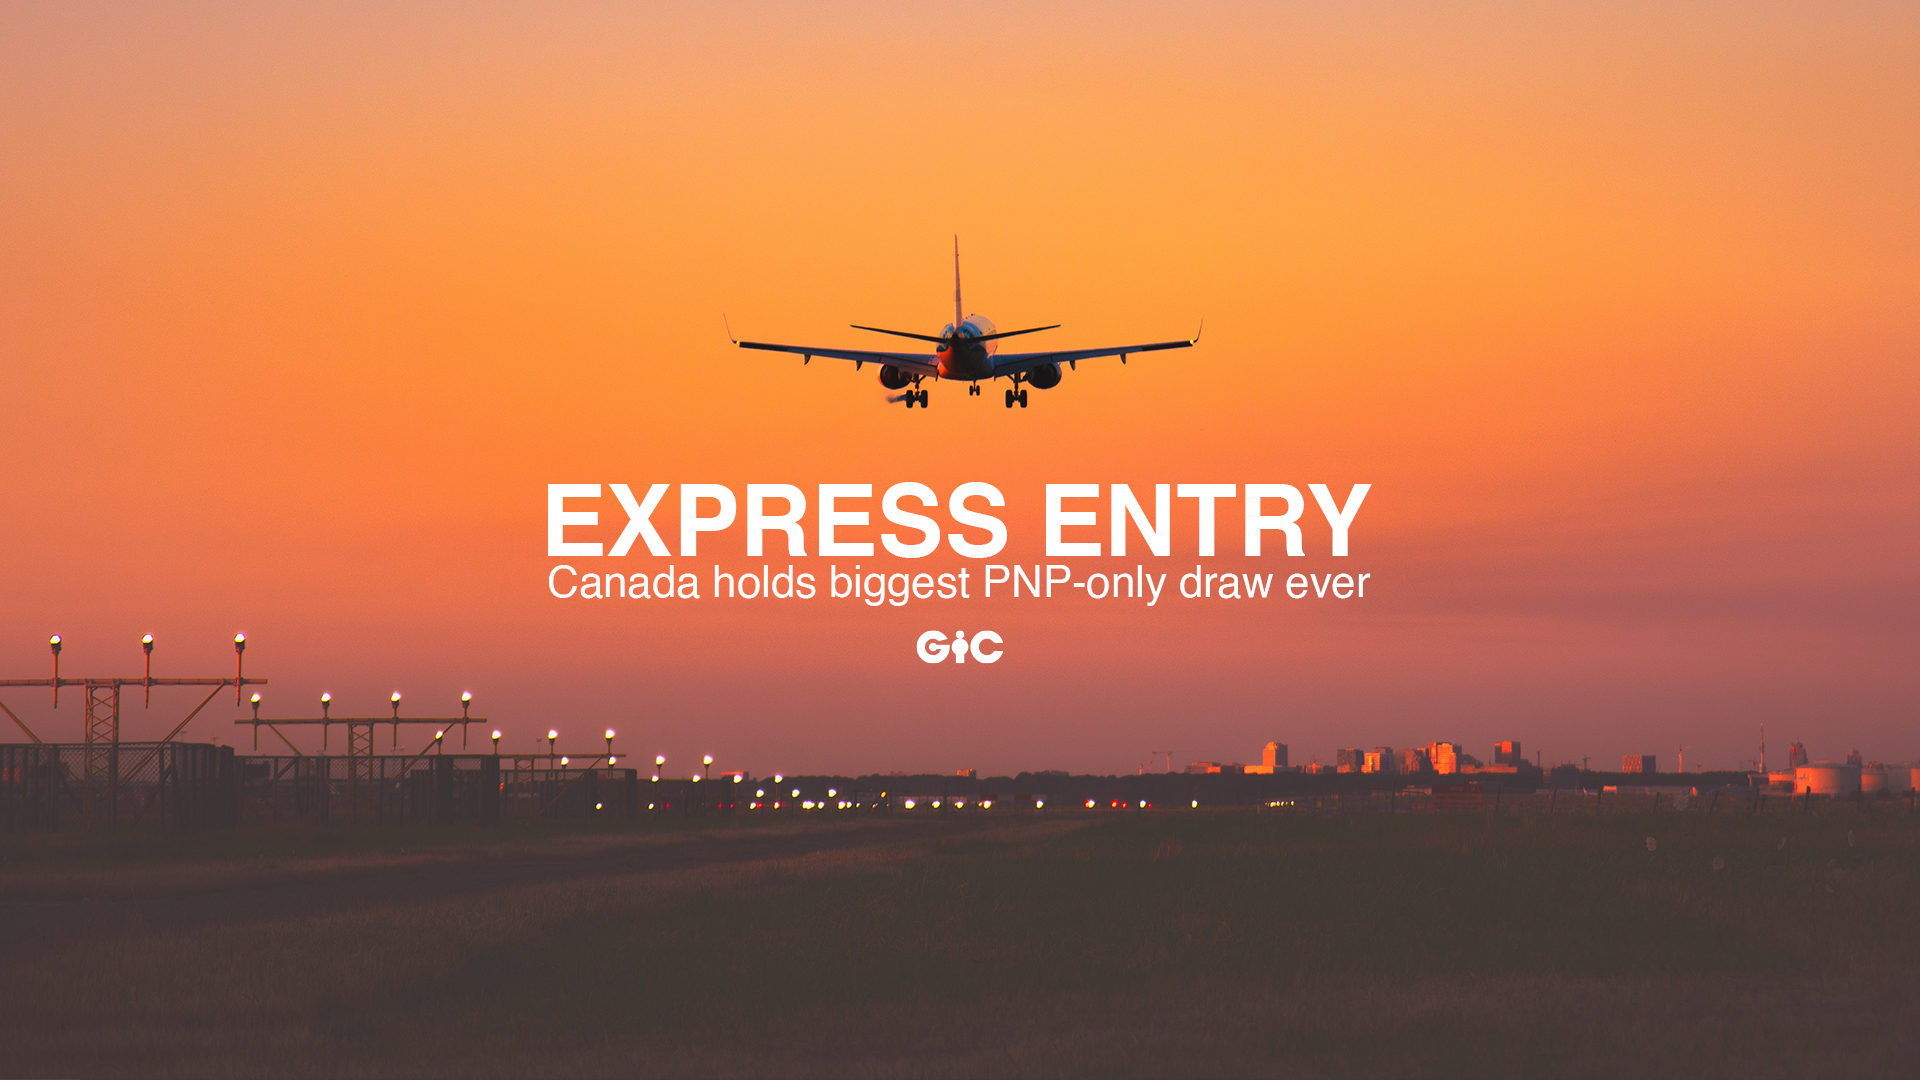 Express Entry Canada holds biggest PNP-only draw ever